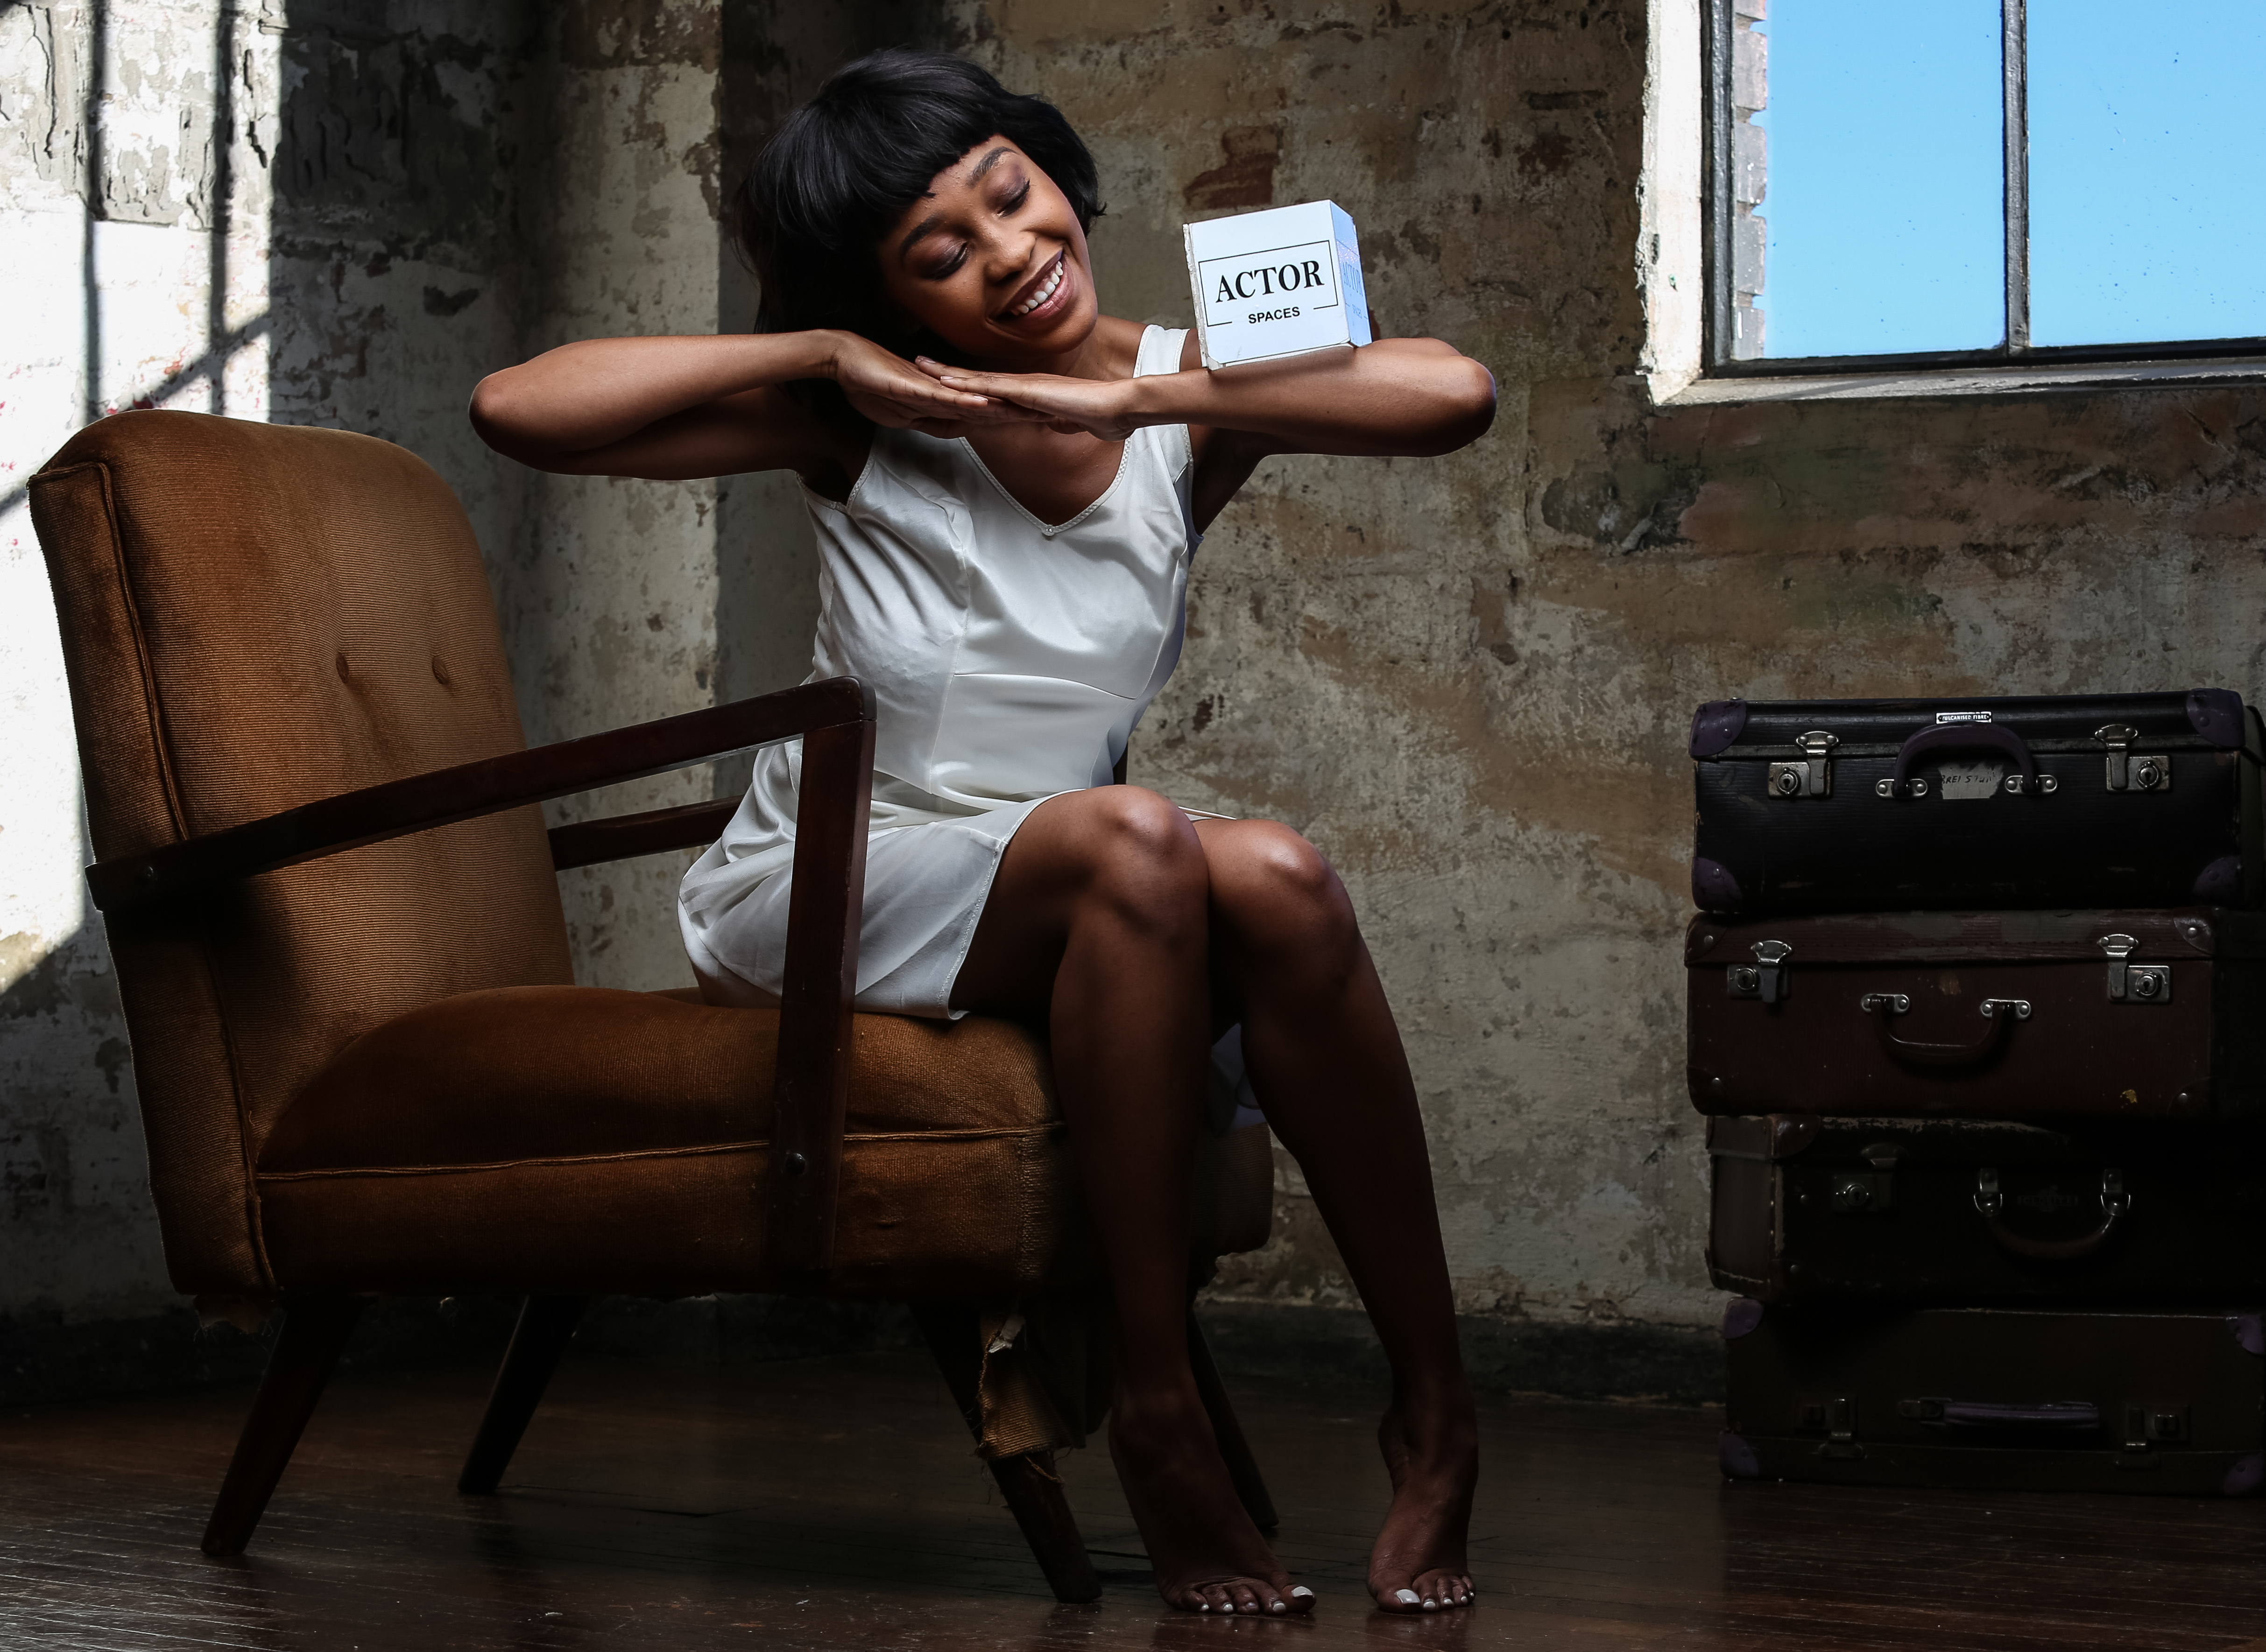 New Breed | Didintle Khunou | Actor Spaces